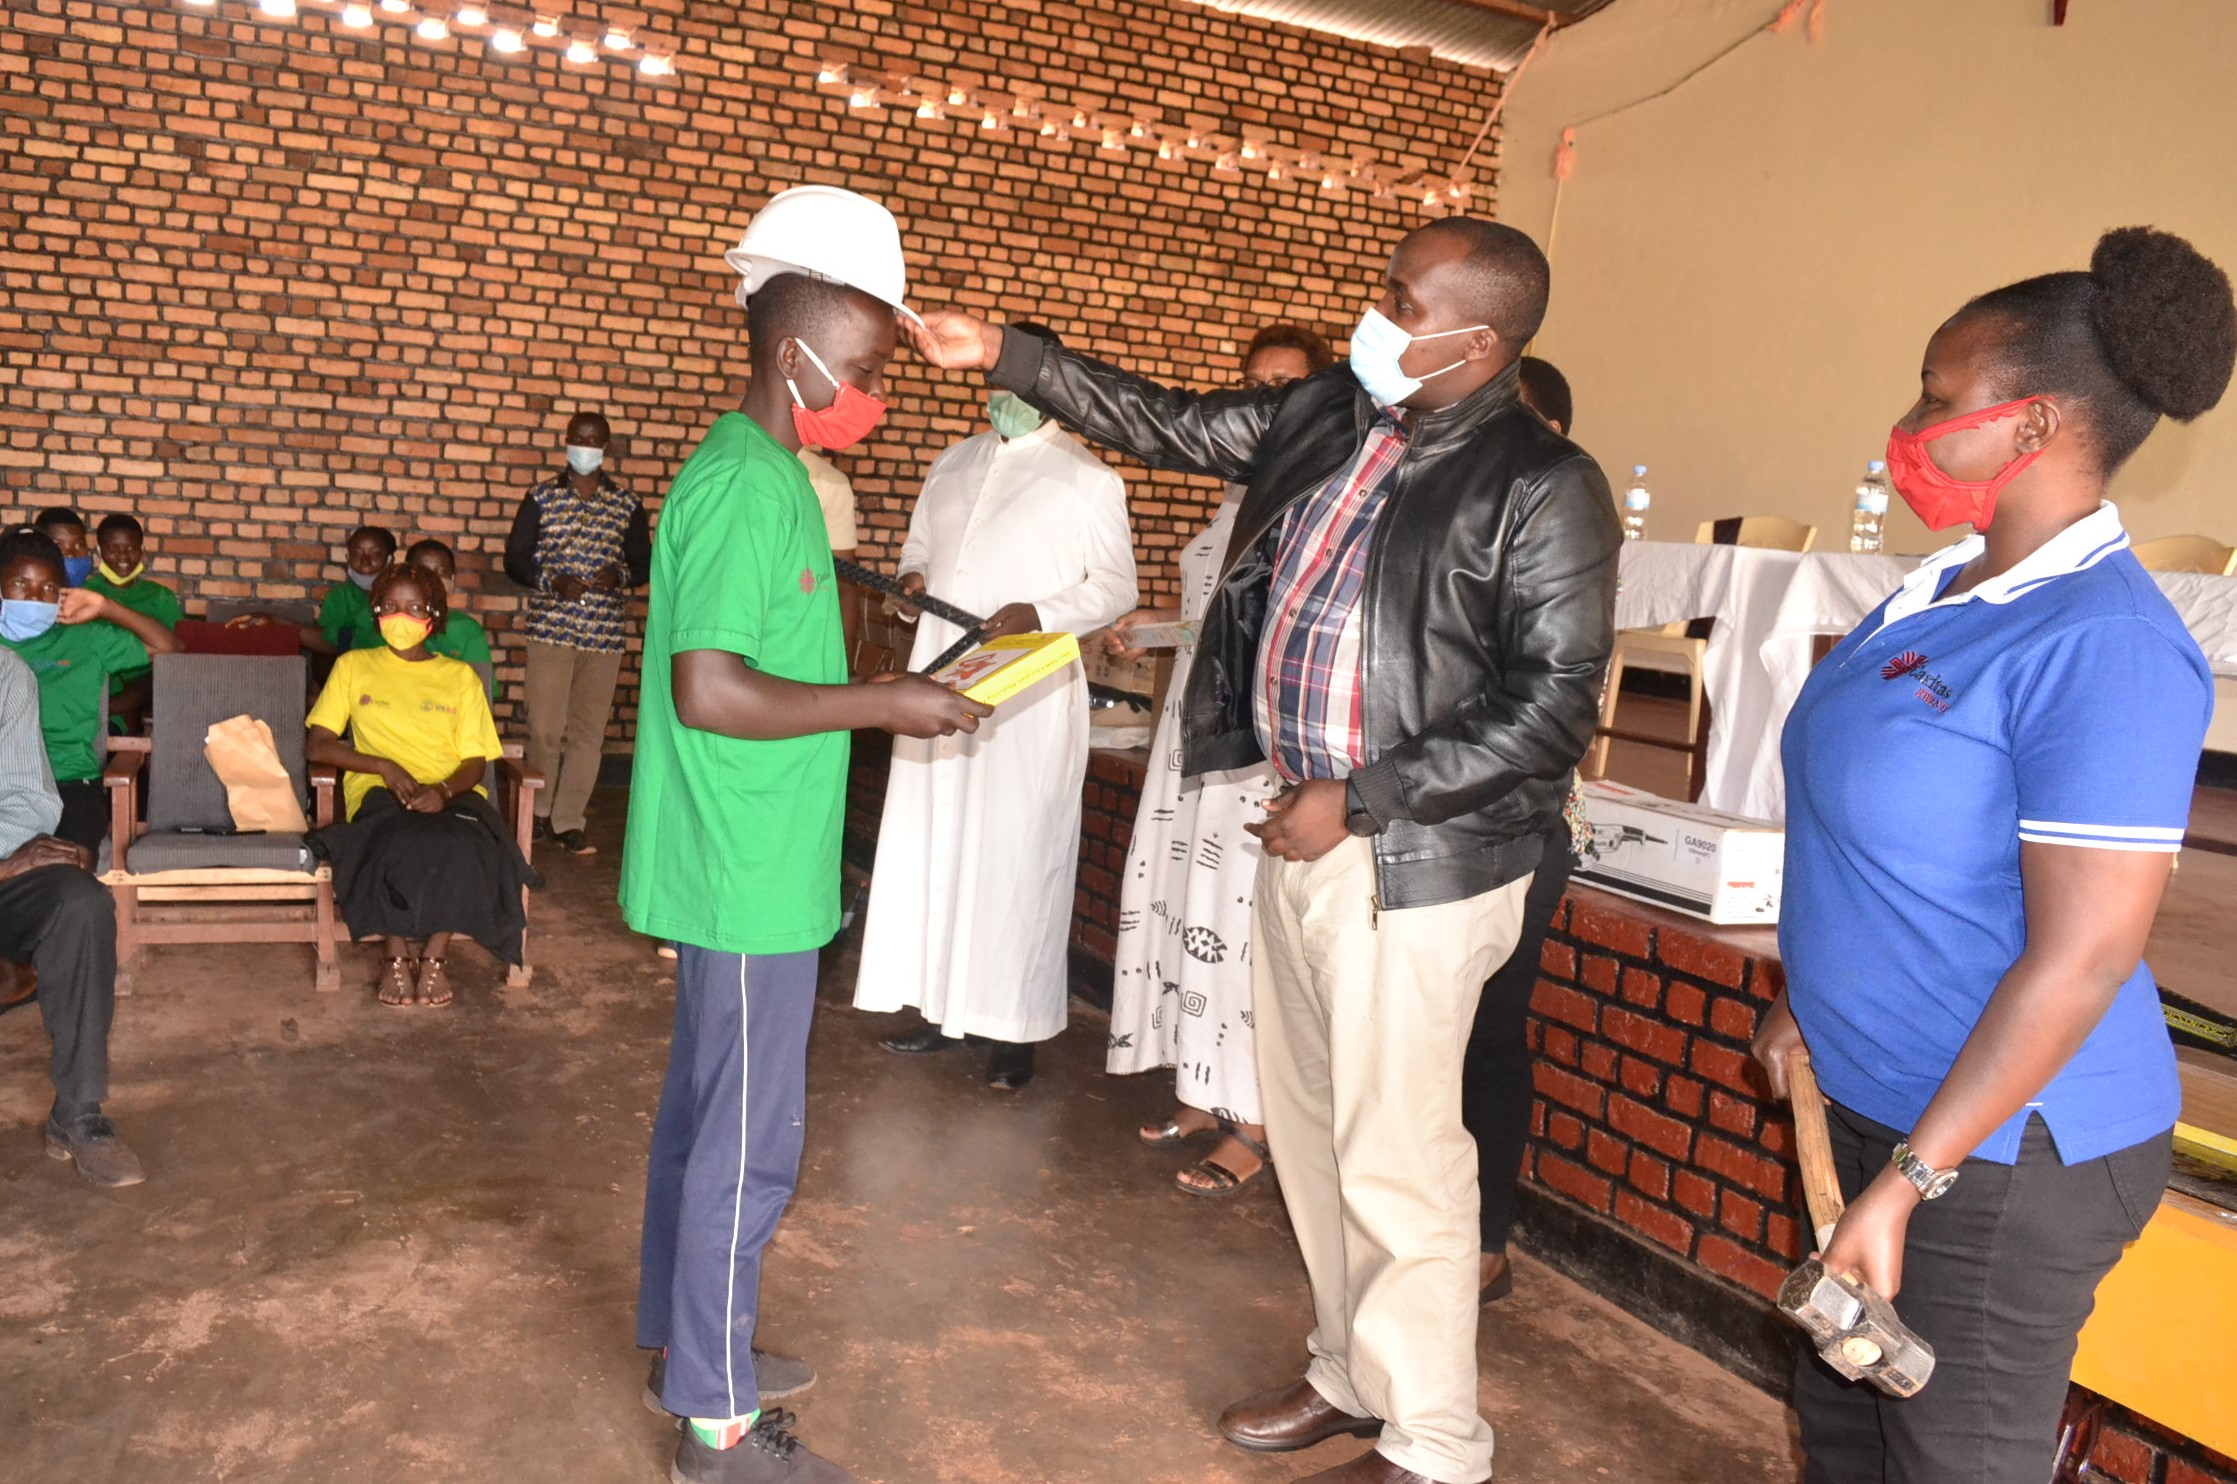 vocational training courses were given to young people